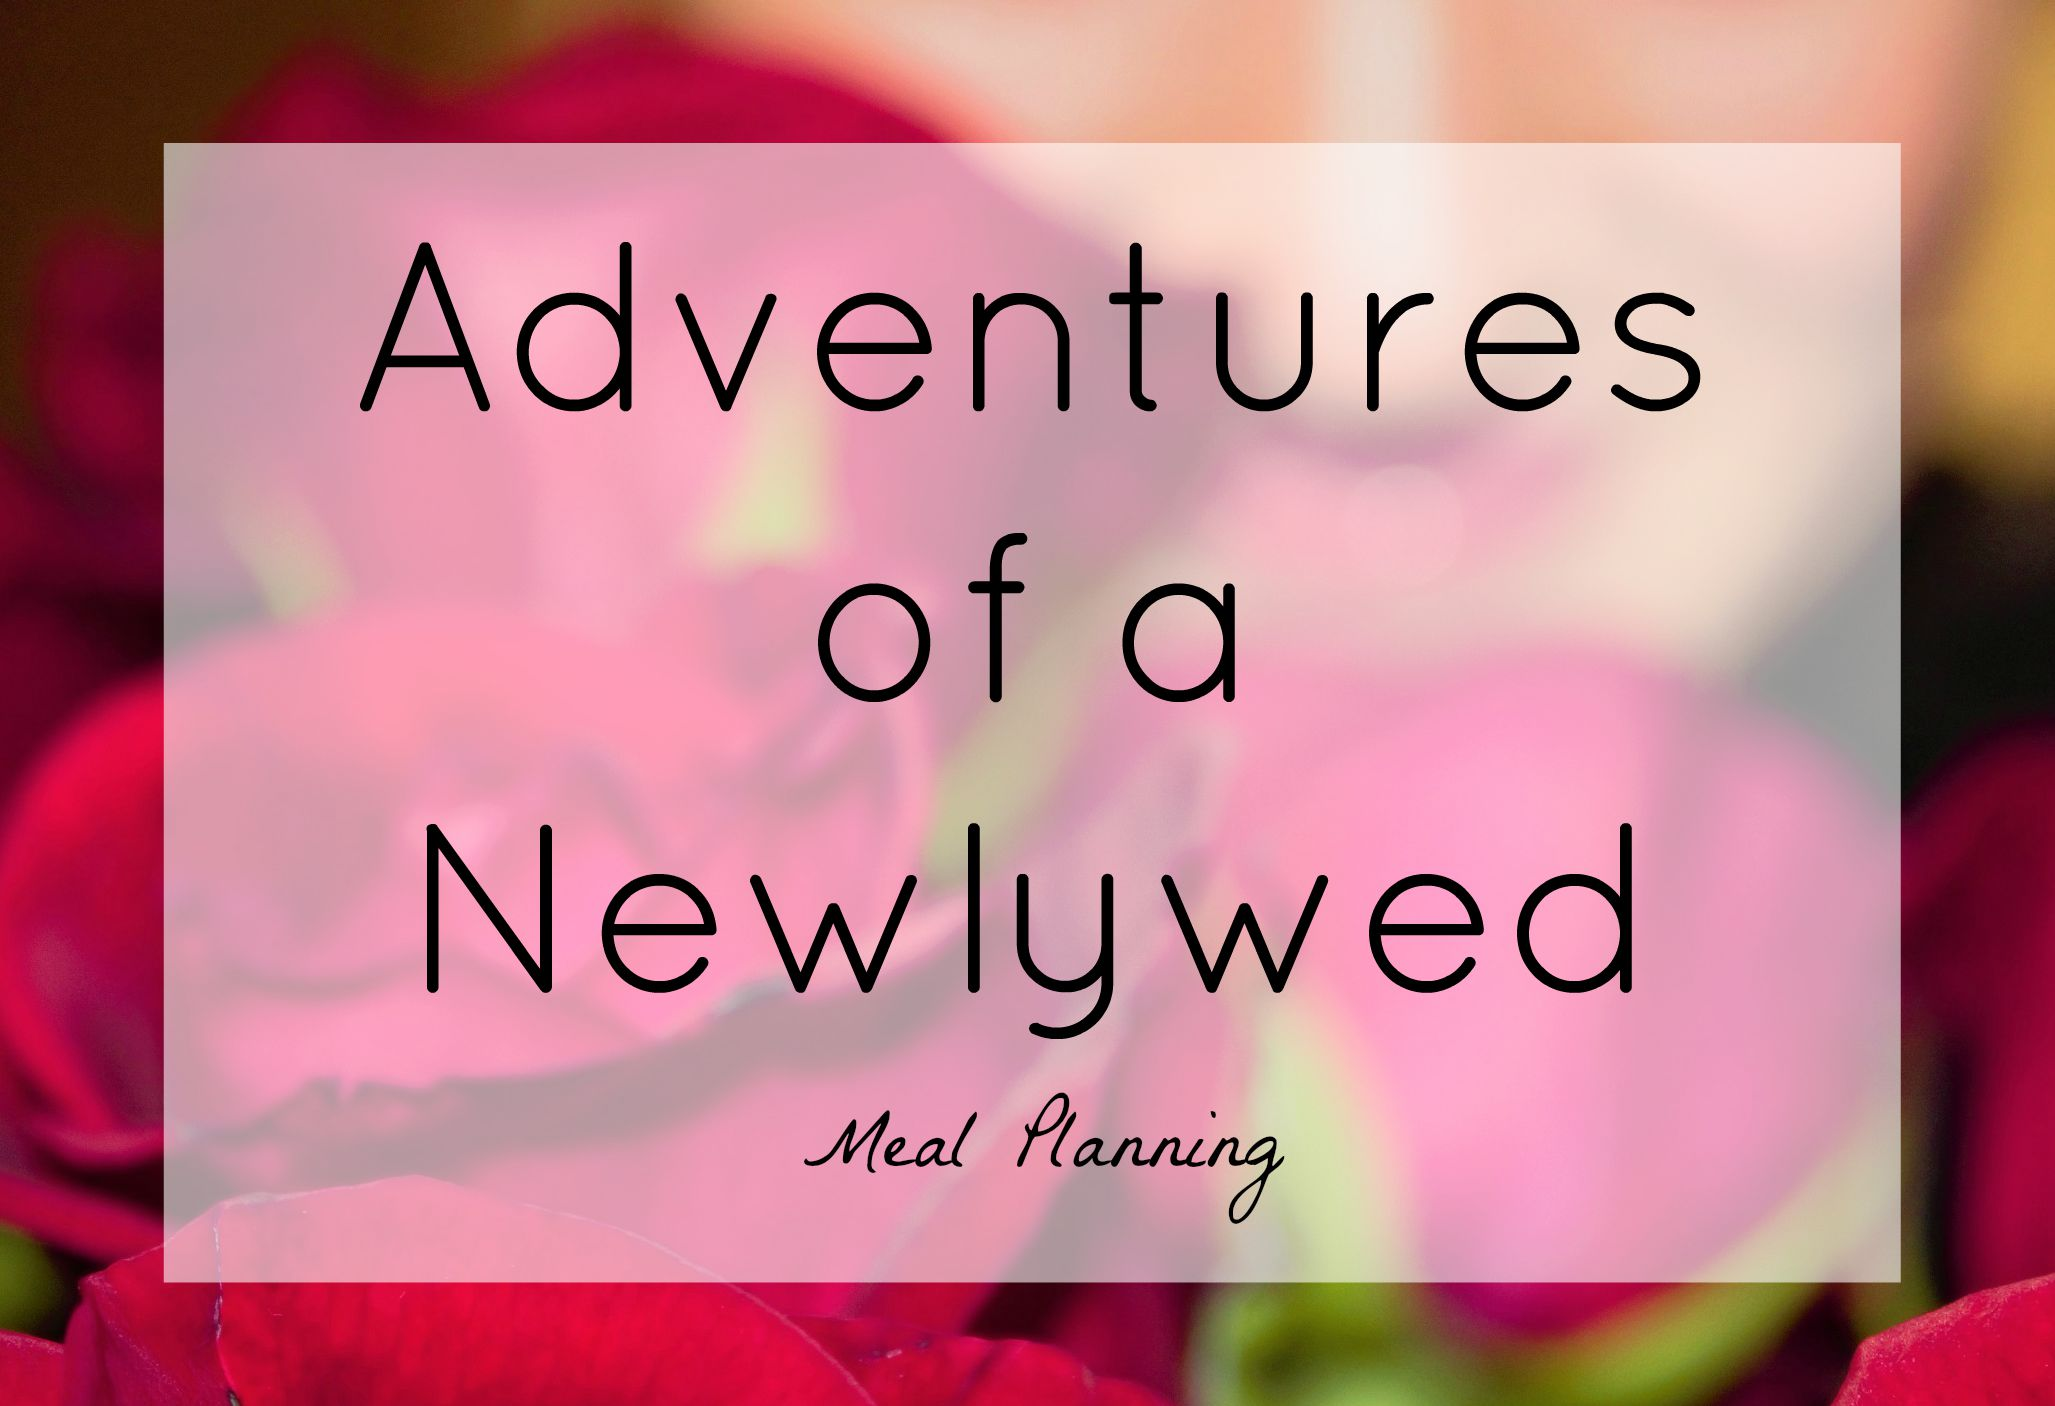 Adventures of a Newlywed: My First Week of Meal Planning